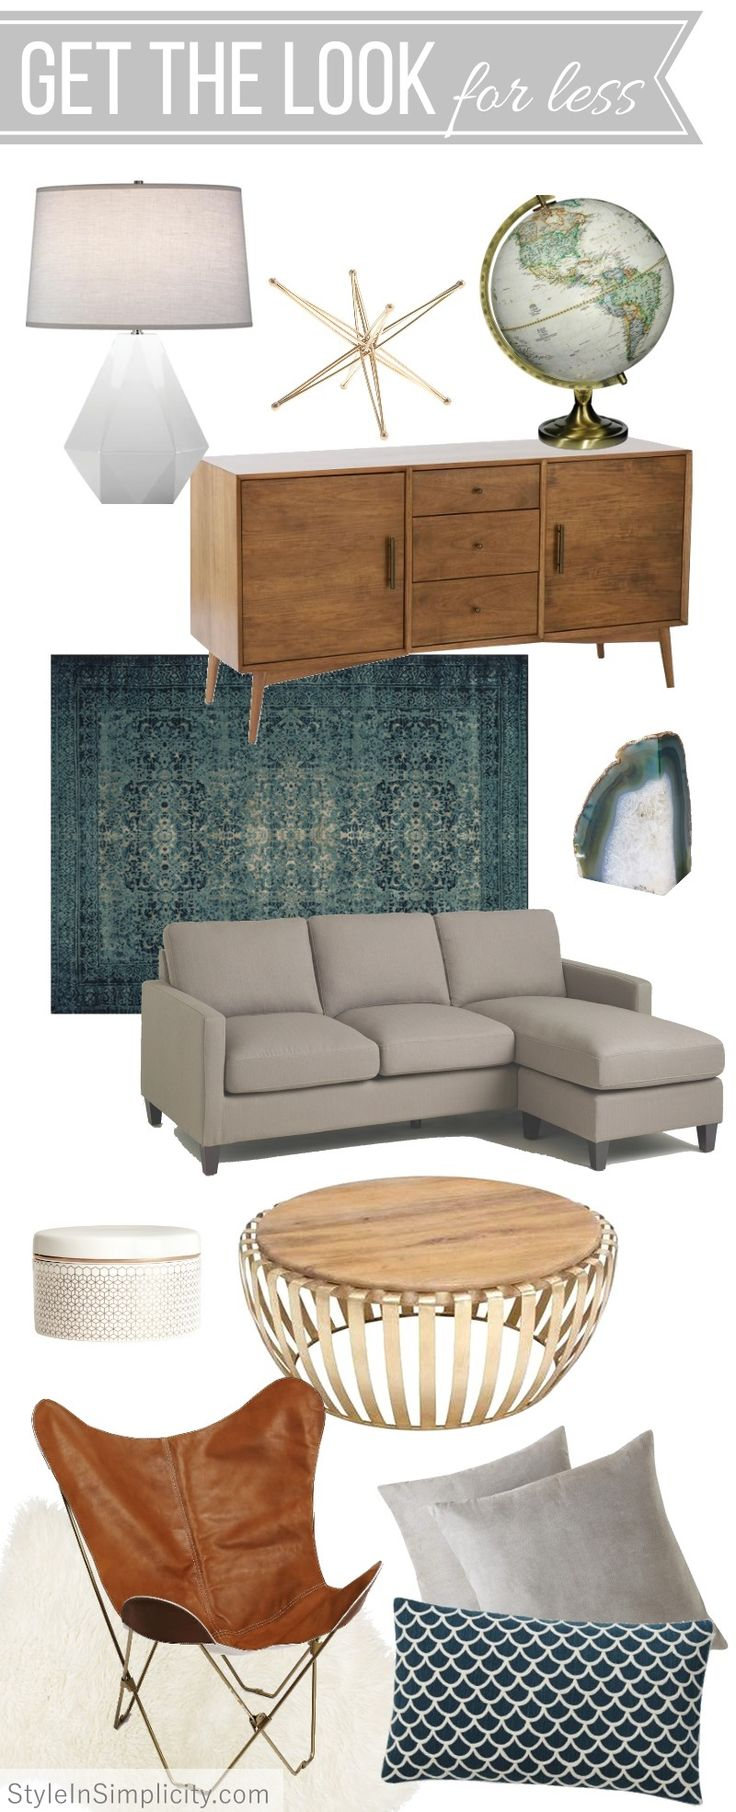 Check out this mid-century trendy house decor with dazzling mid-century furn…